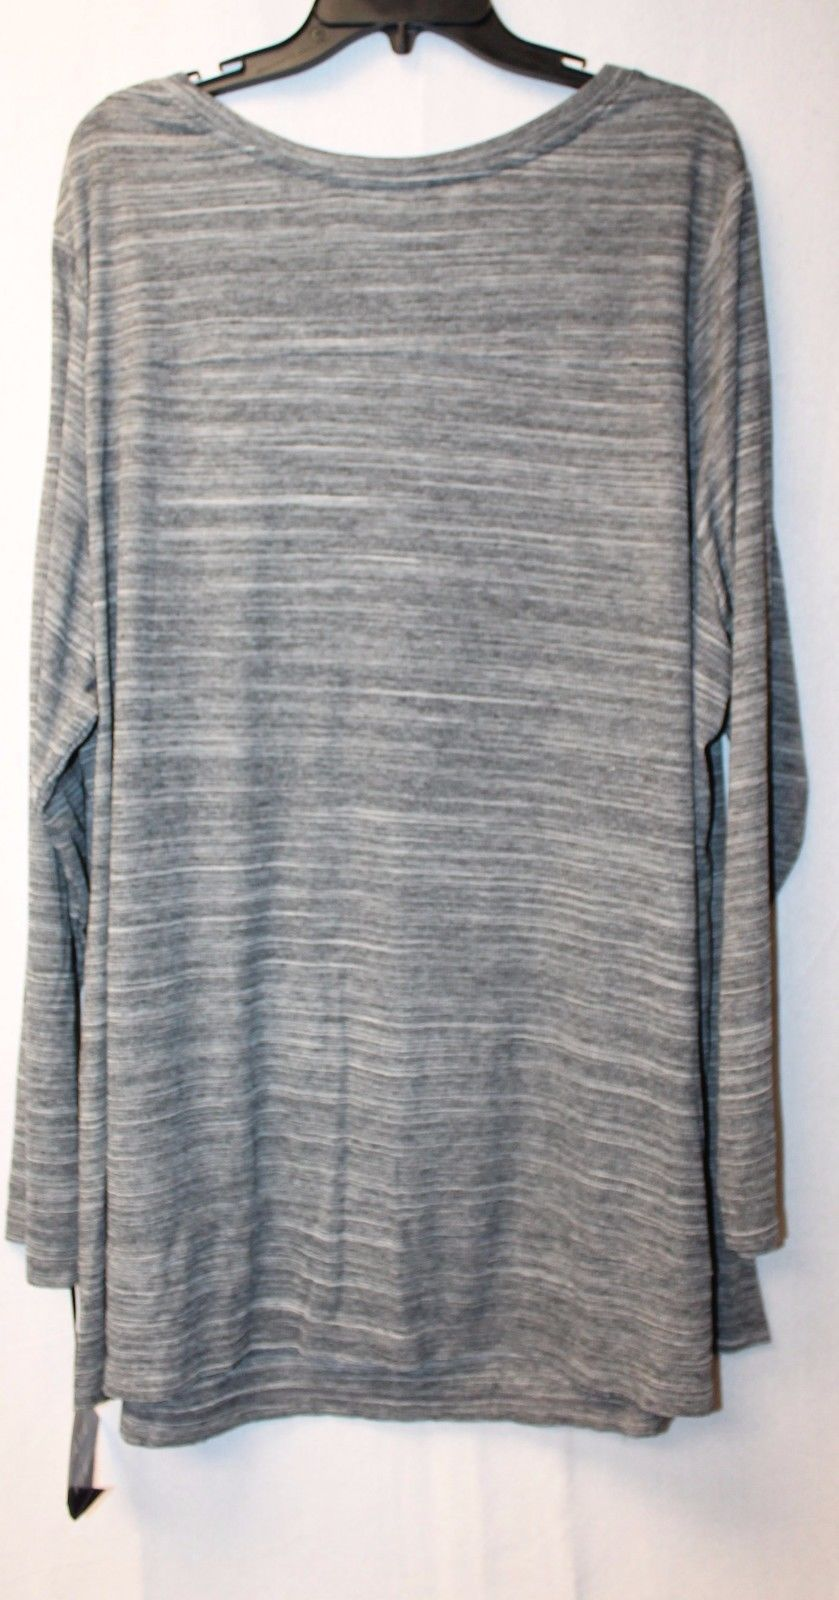 NEW AVA & VIV WOMENS PLUS SIZE 3X GRAY GREY STRIPEY LONG SLEEVE SEAMED SHIRT TOP